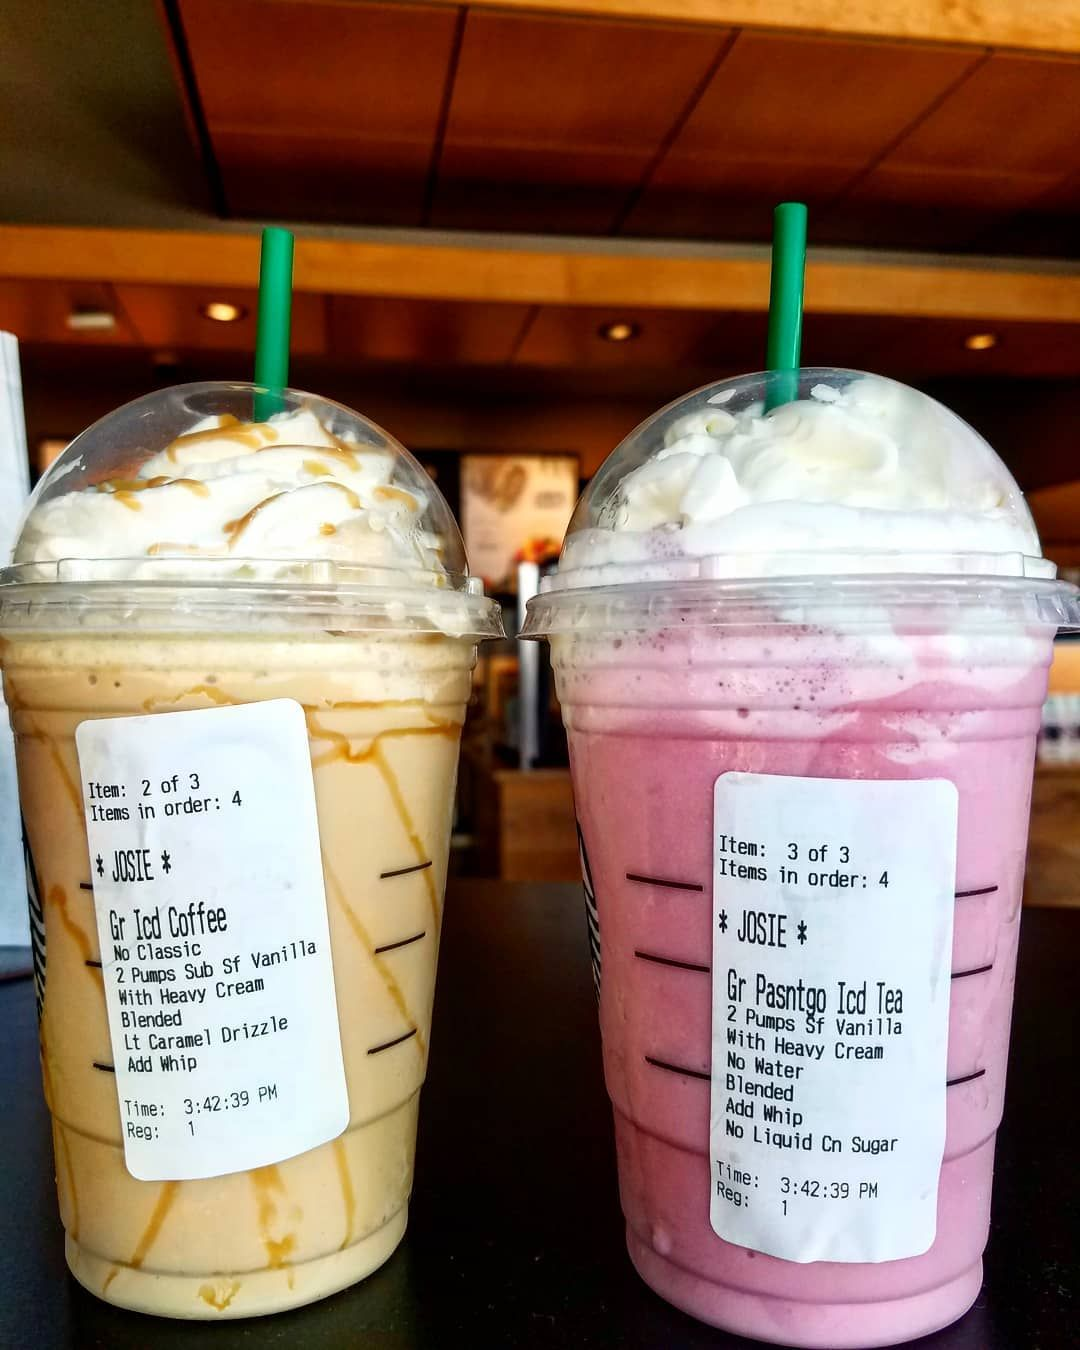 15 Best Keto Drinks at Starbucks: Your Guide to Low-Carb Starbucks Drinks - Green and Keto